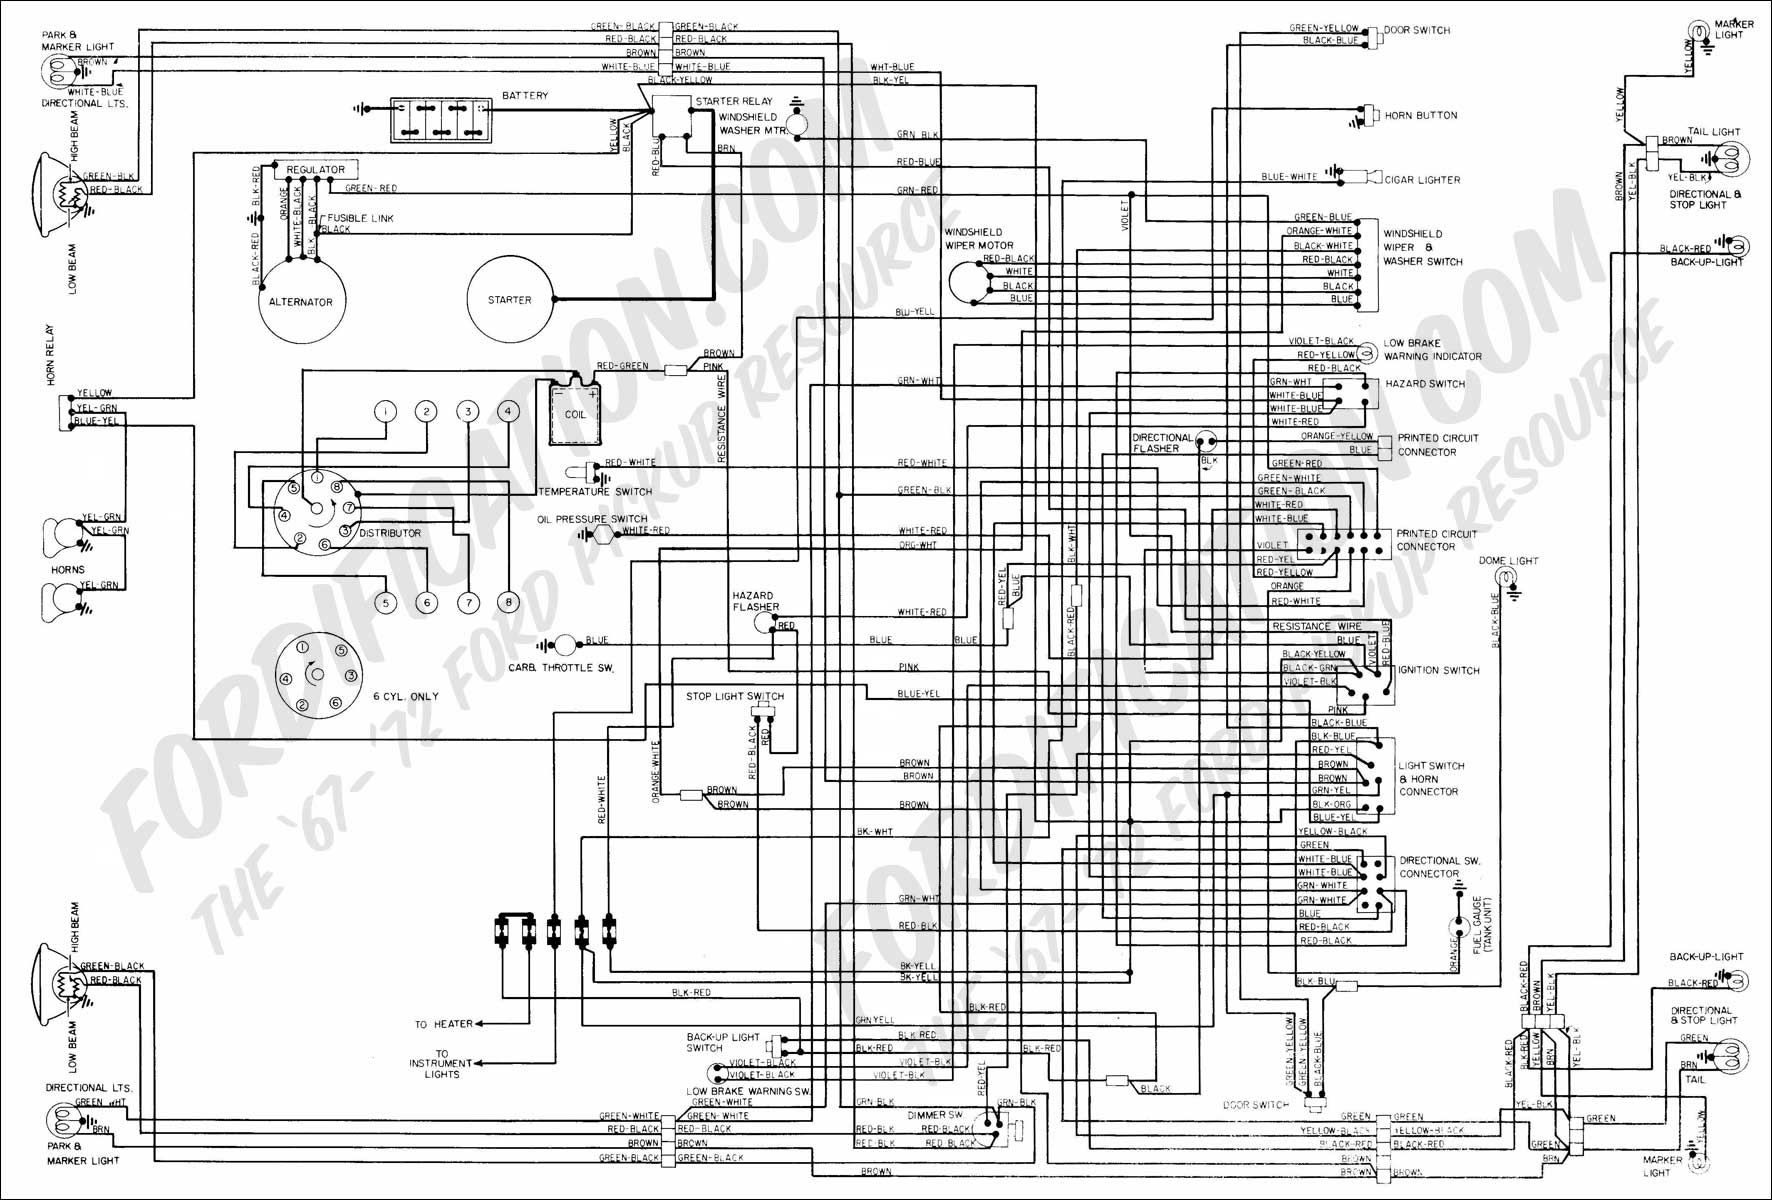 02 F250 Wiring Diagram | Wiring Diagram - 2004 Ford Explorer Radio Wiring Diagram